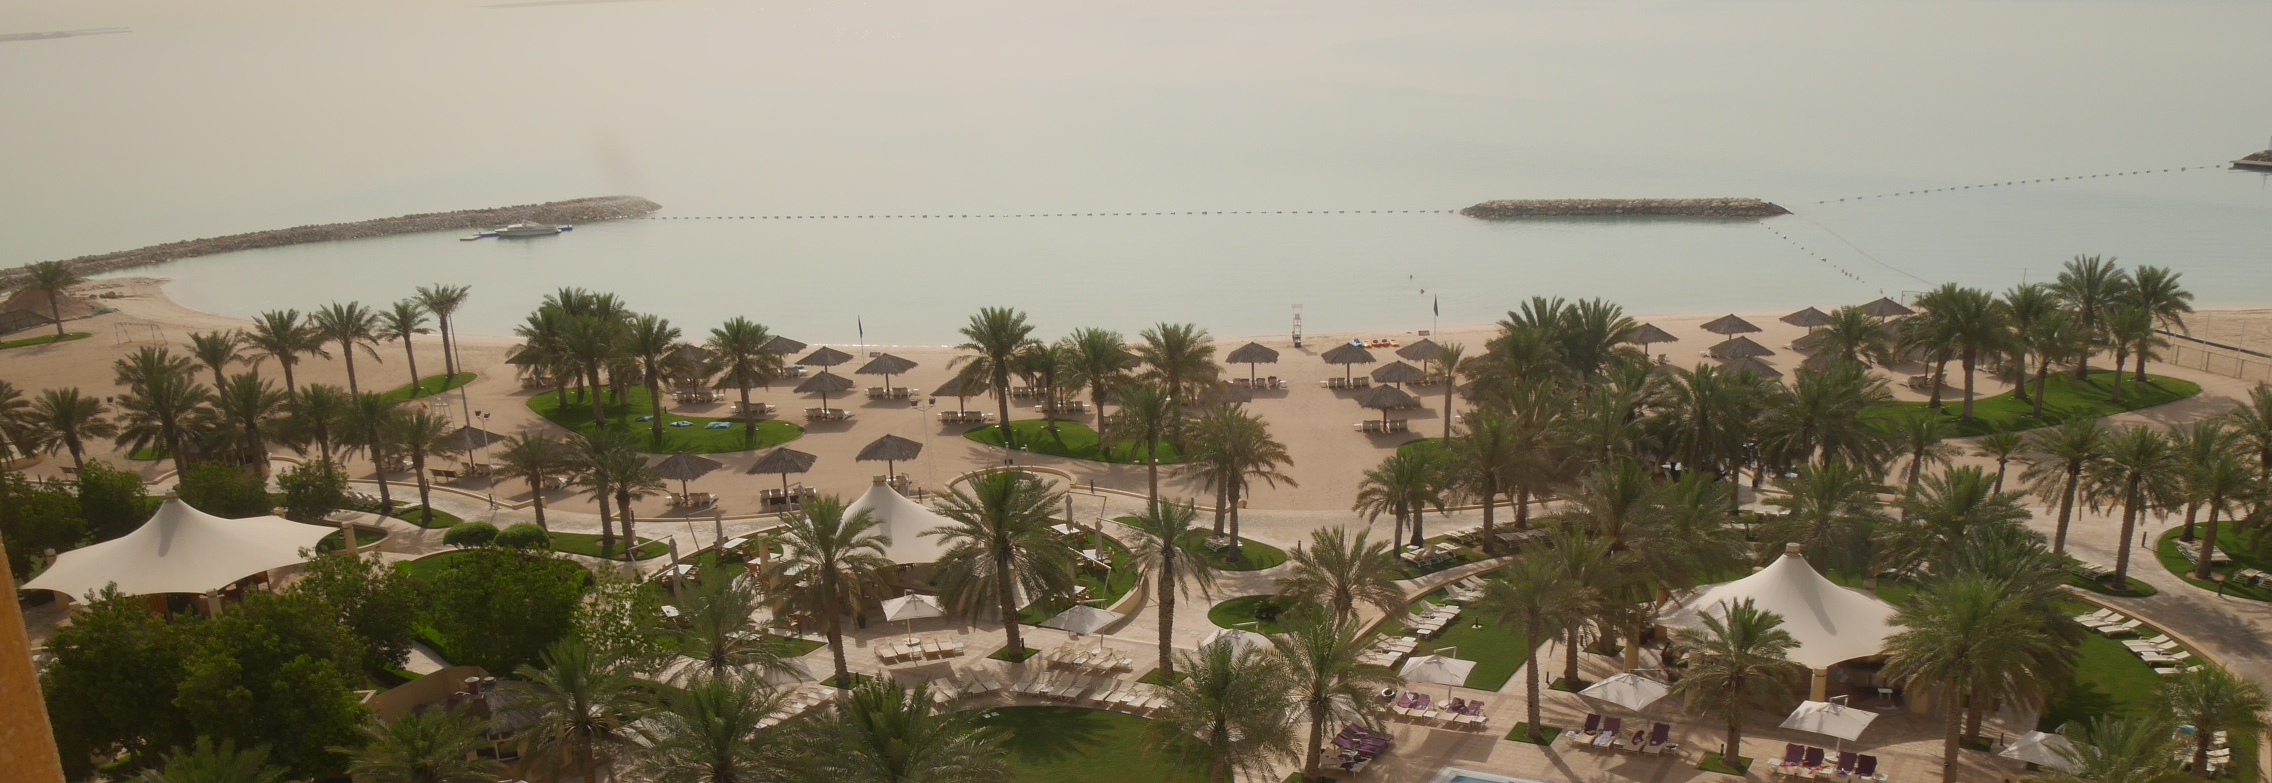 Doha – Strand, Kultur, Shopping und Design